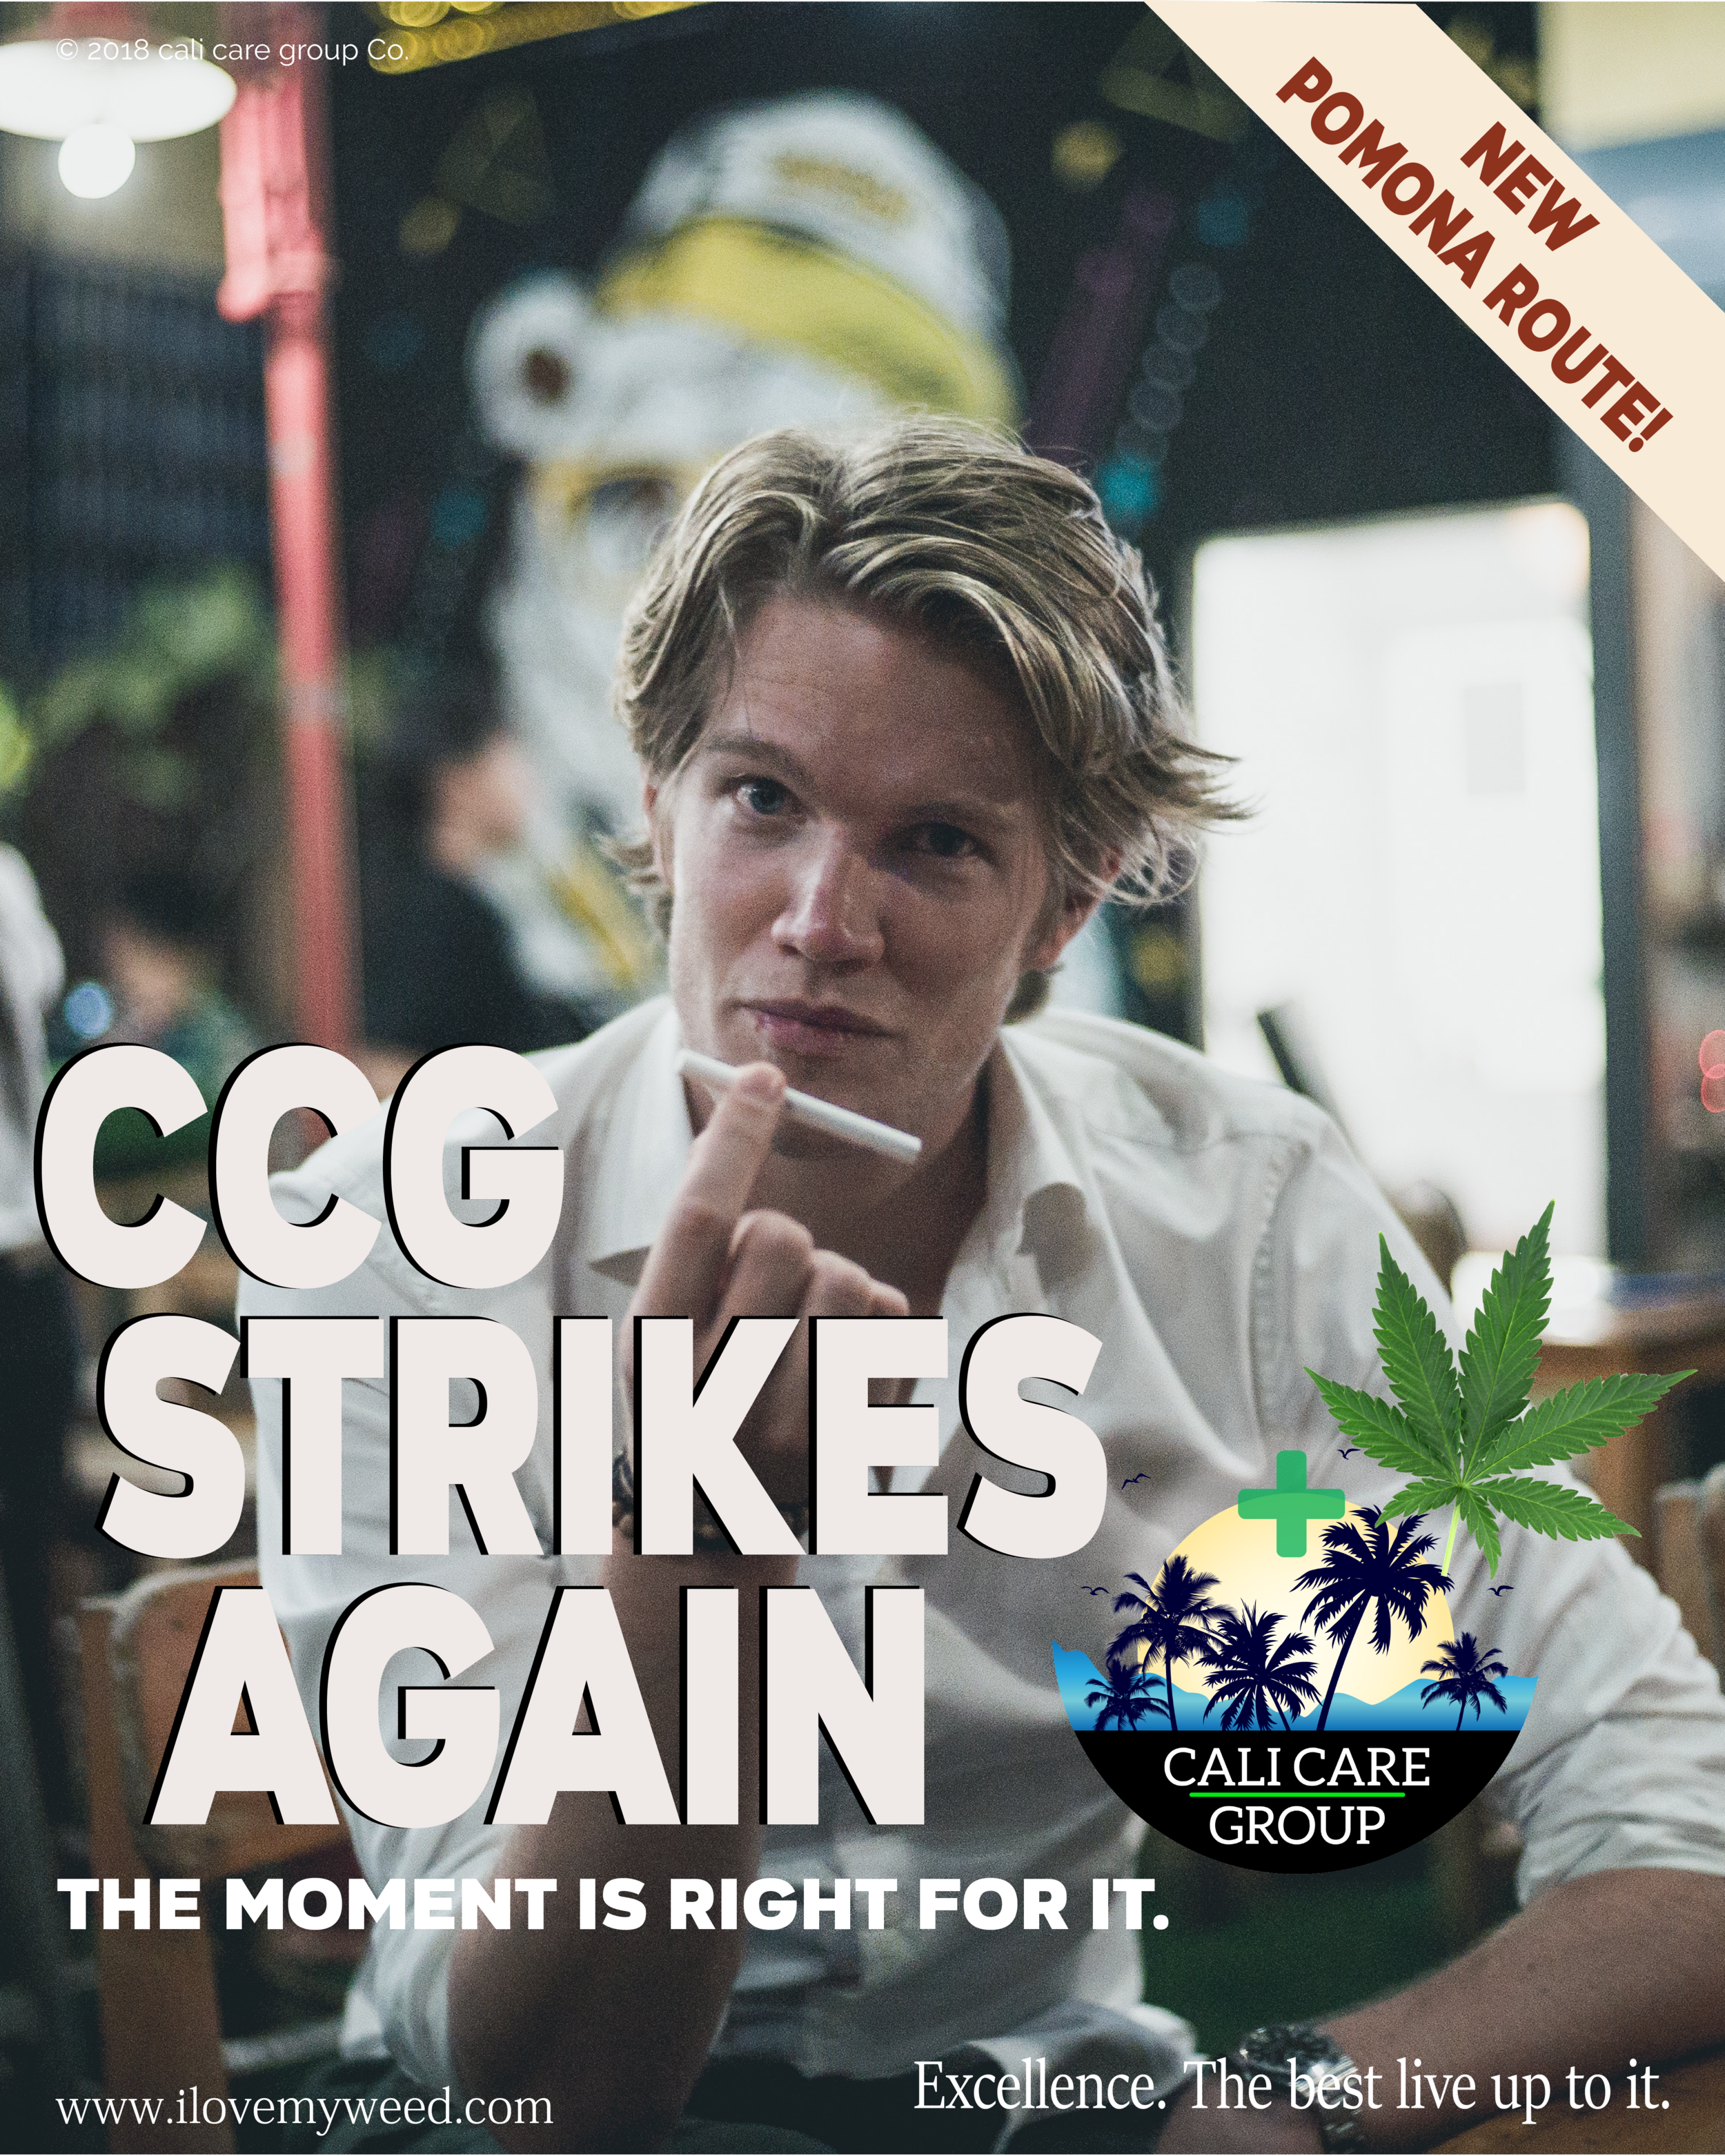 ccg ad#29.png